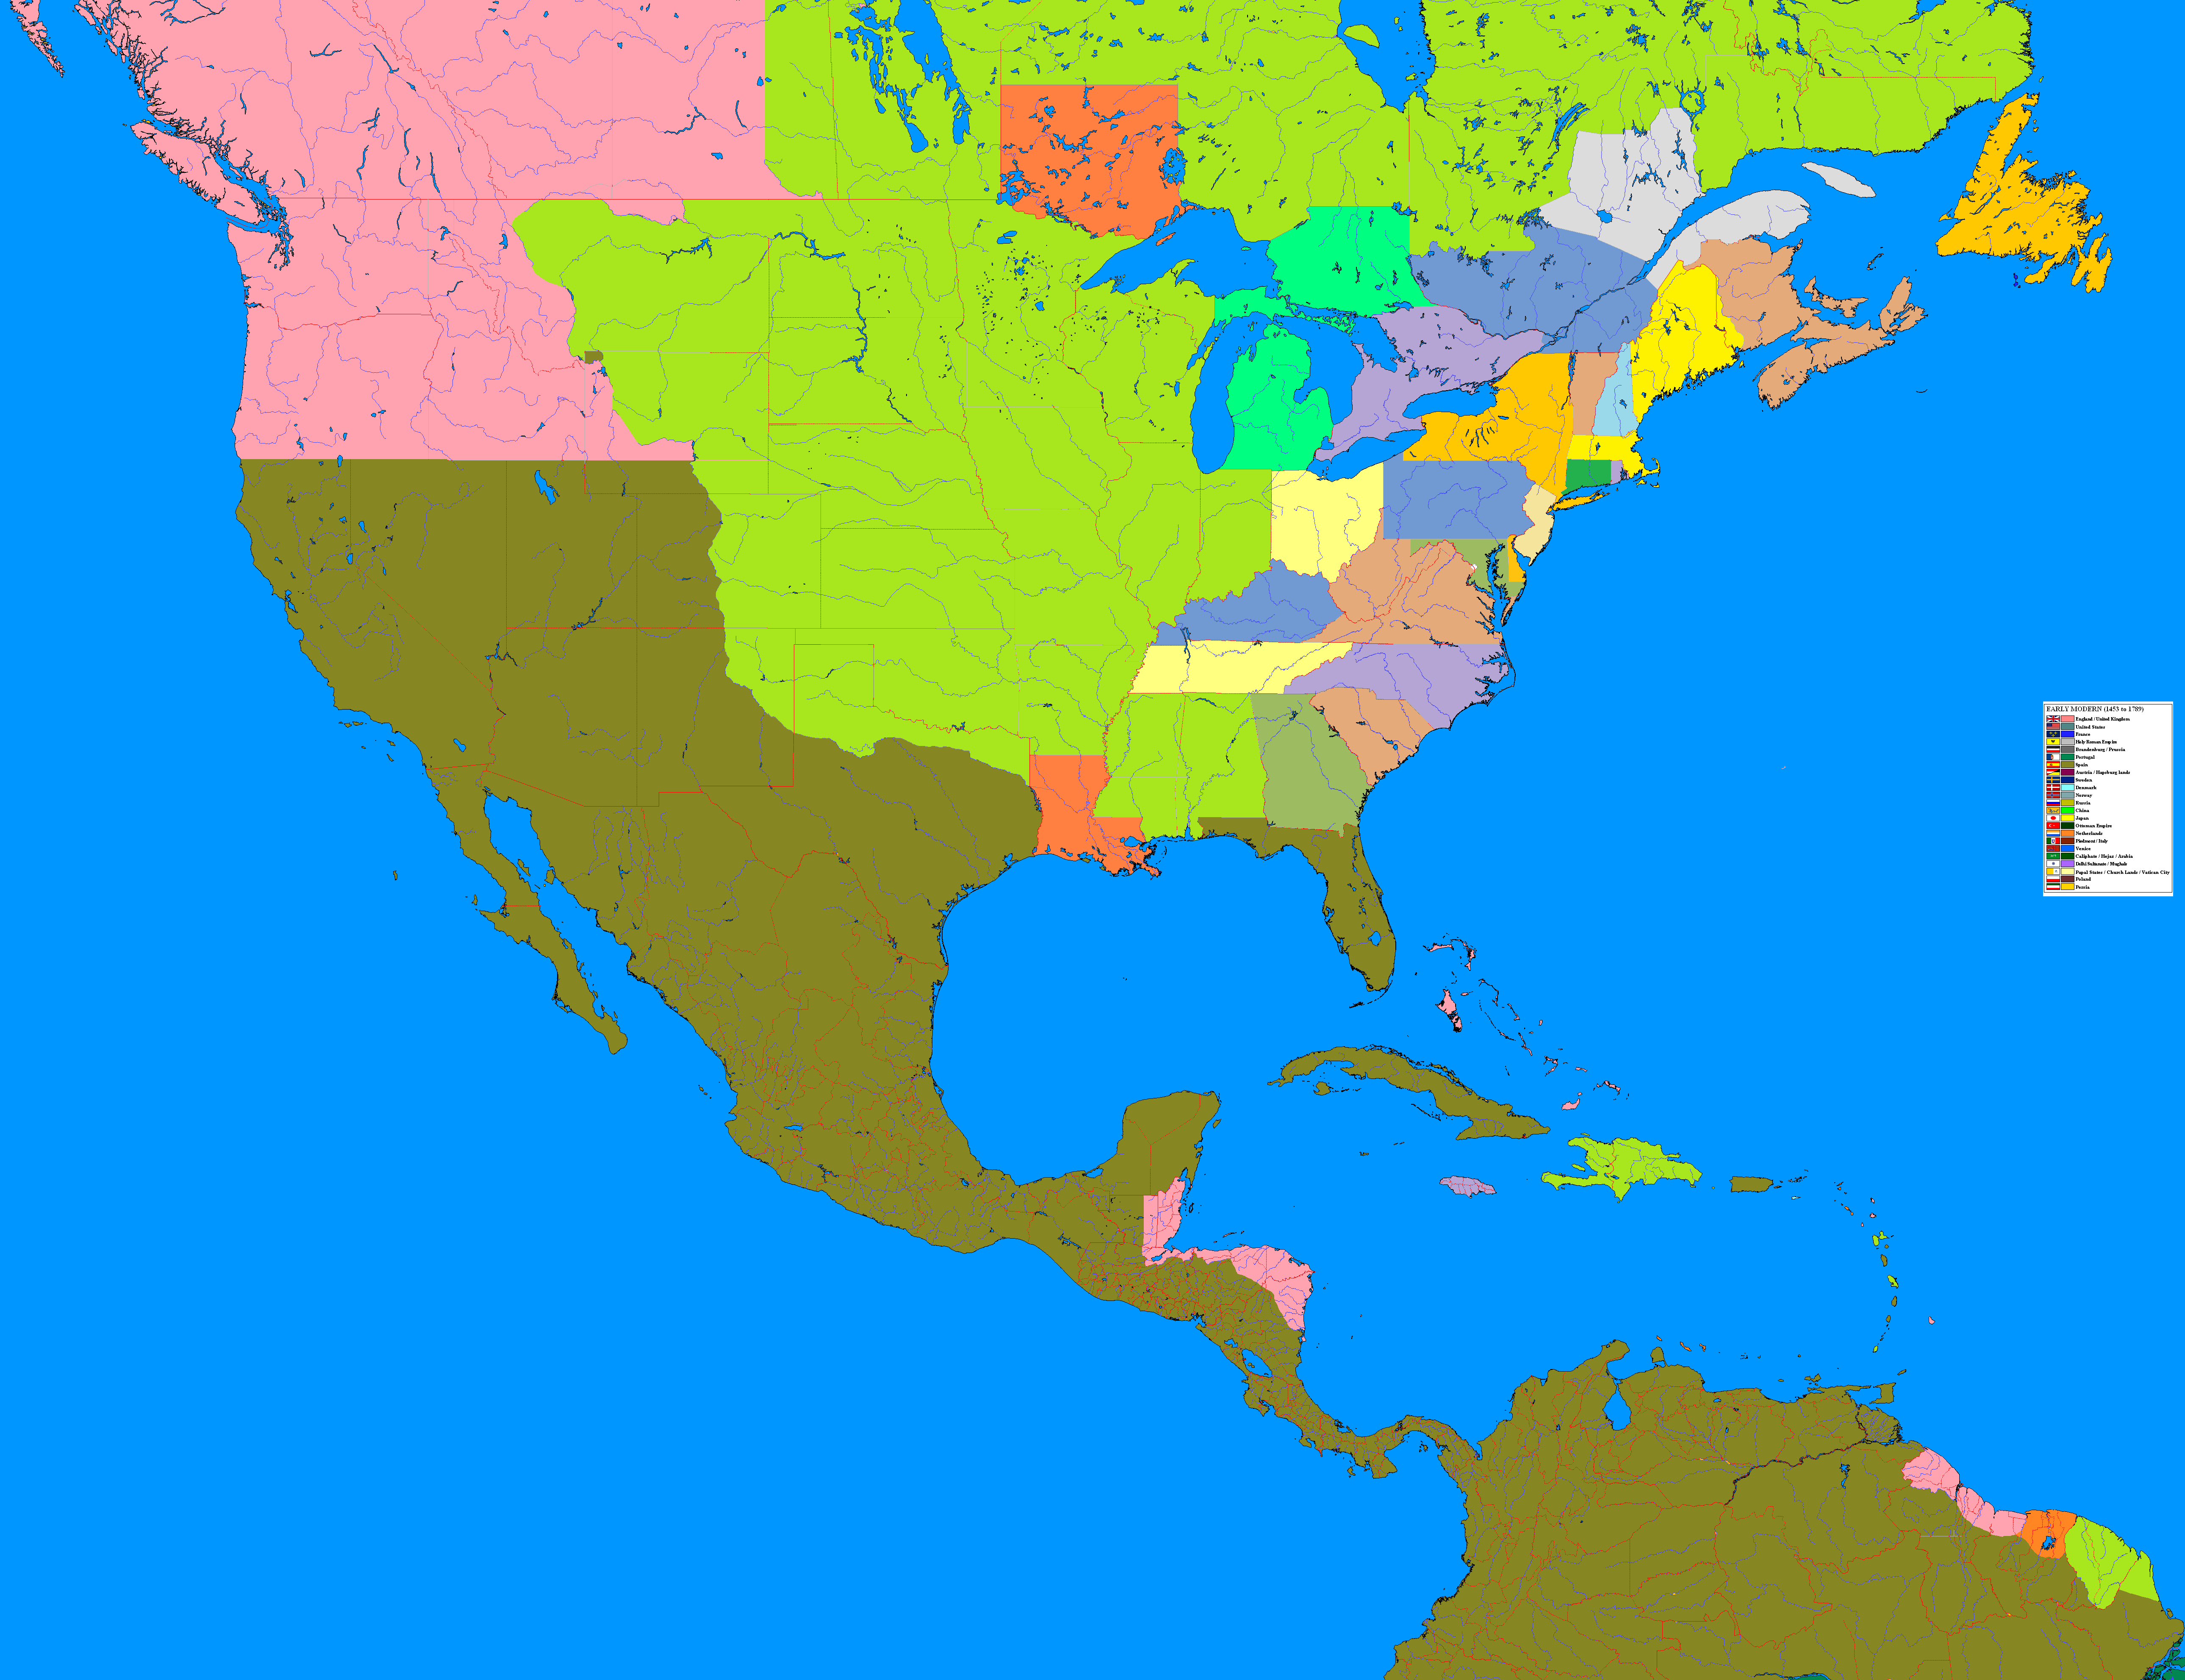 North America By JJohnson On DeviantArt - Map of us in 1812